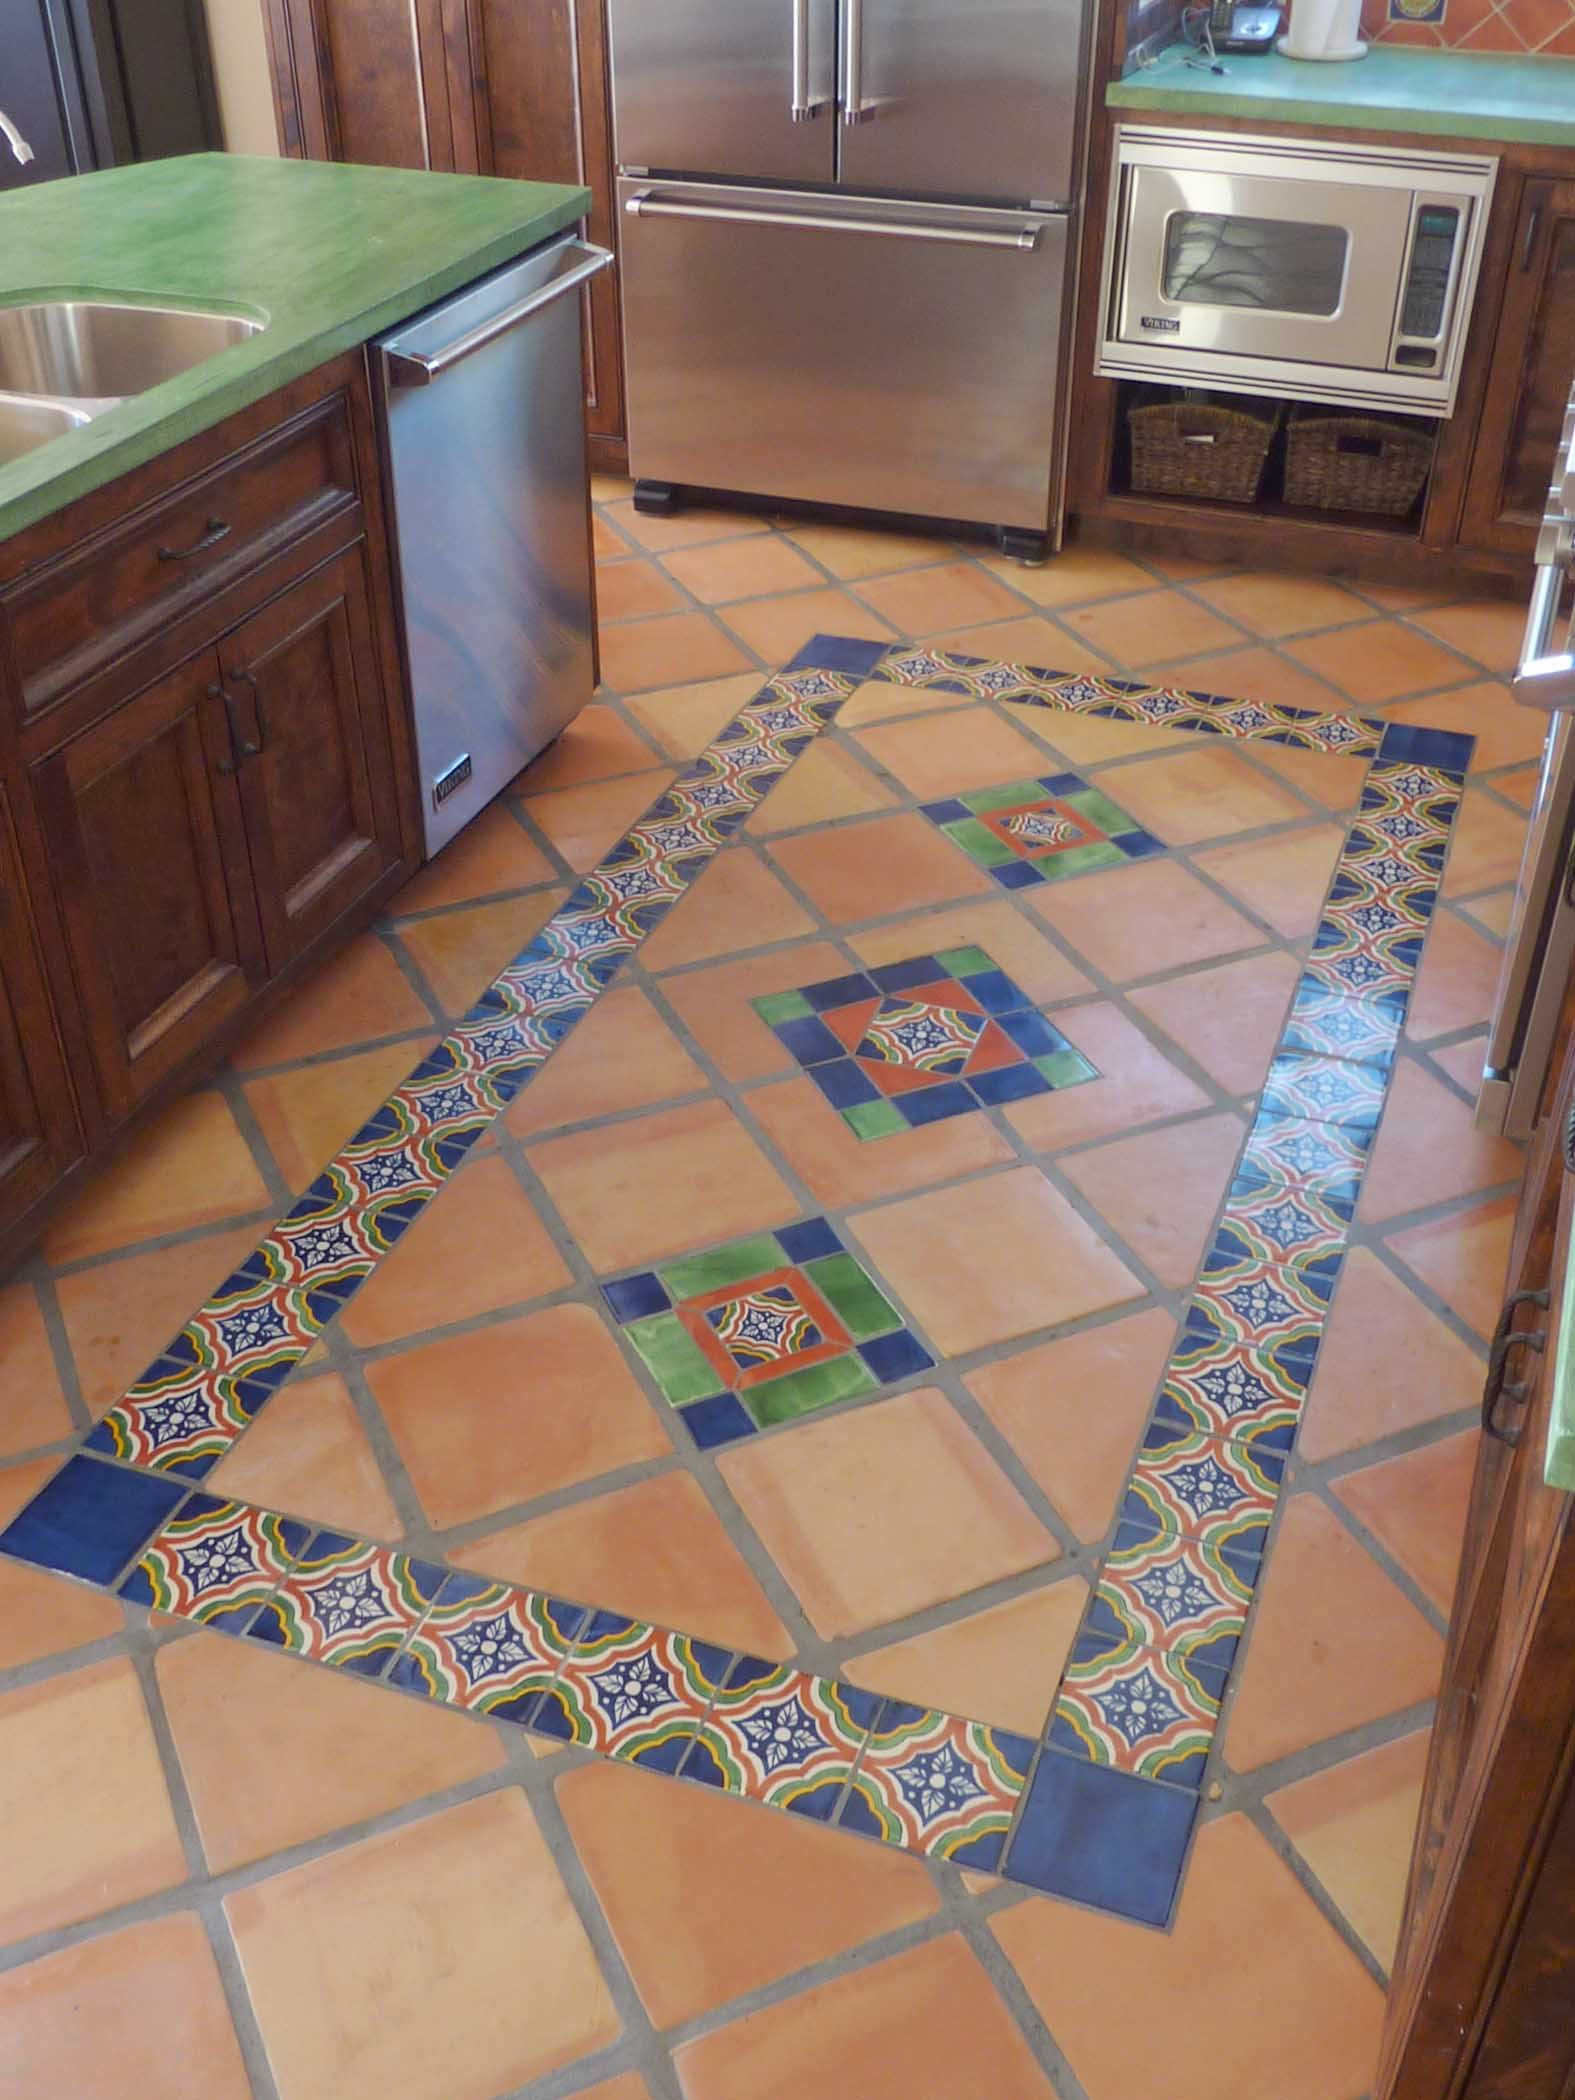 Kitchen remodel using mexican tiles on floor by kristiblackdesigns kitchen remodel using mexican tiles on floor by kristiblackdesigns dailygadgetfo Choice Image